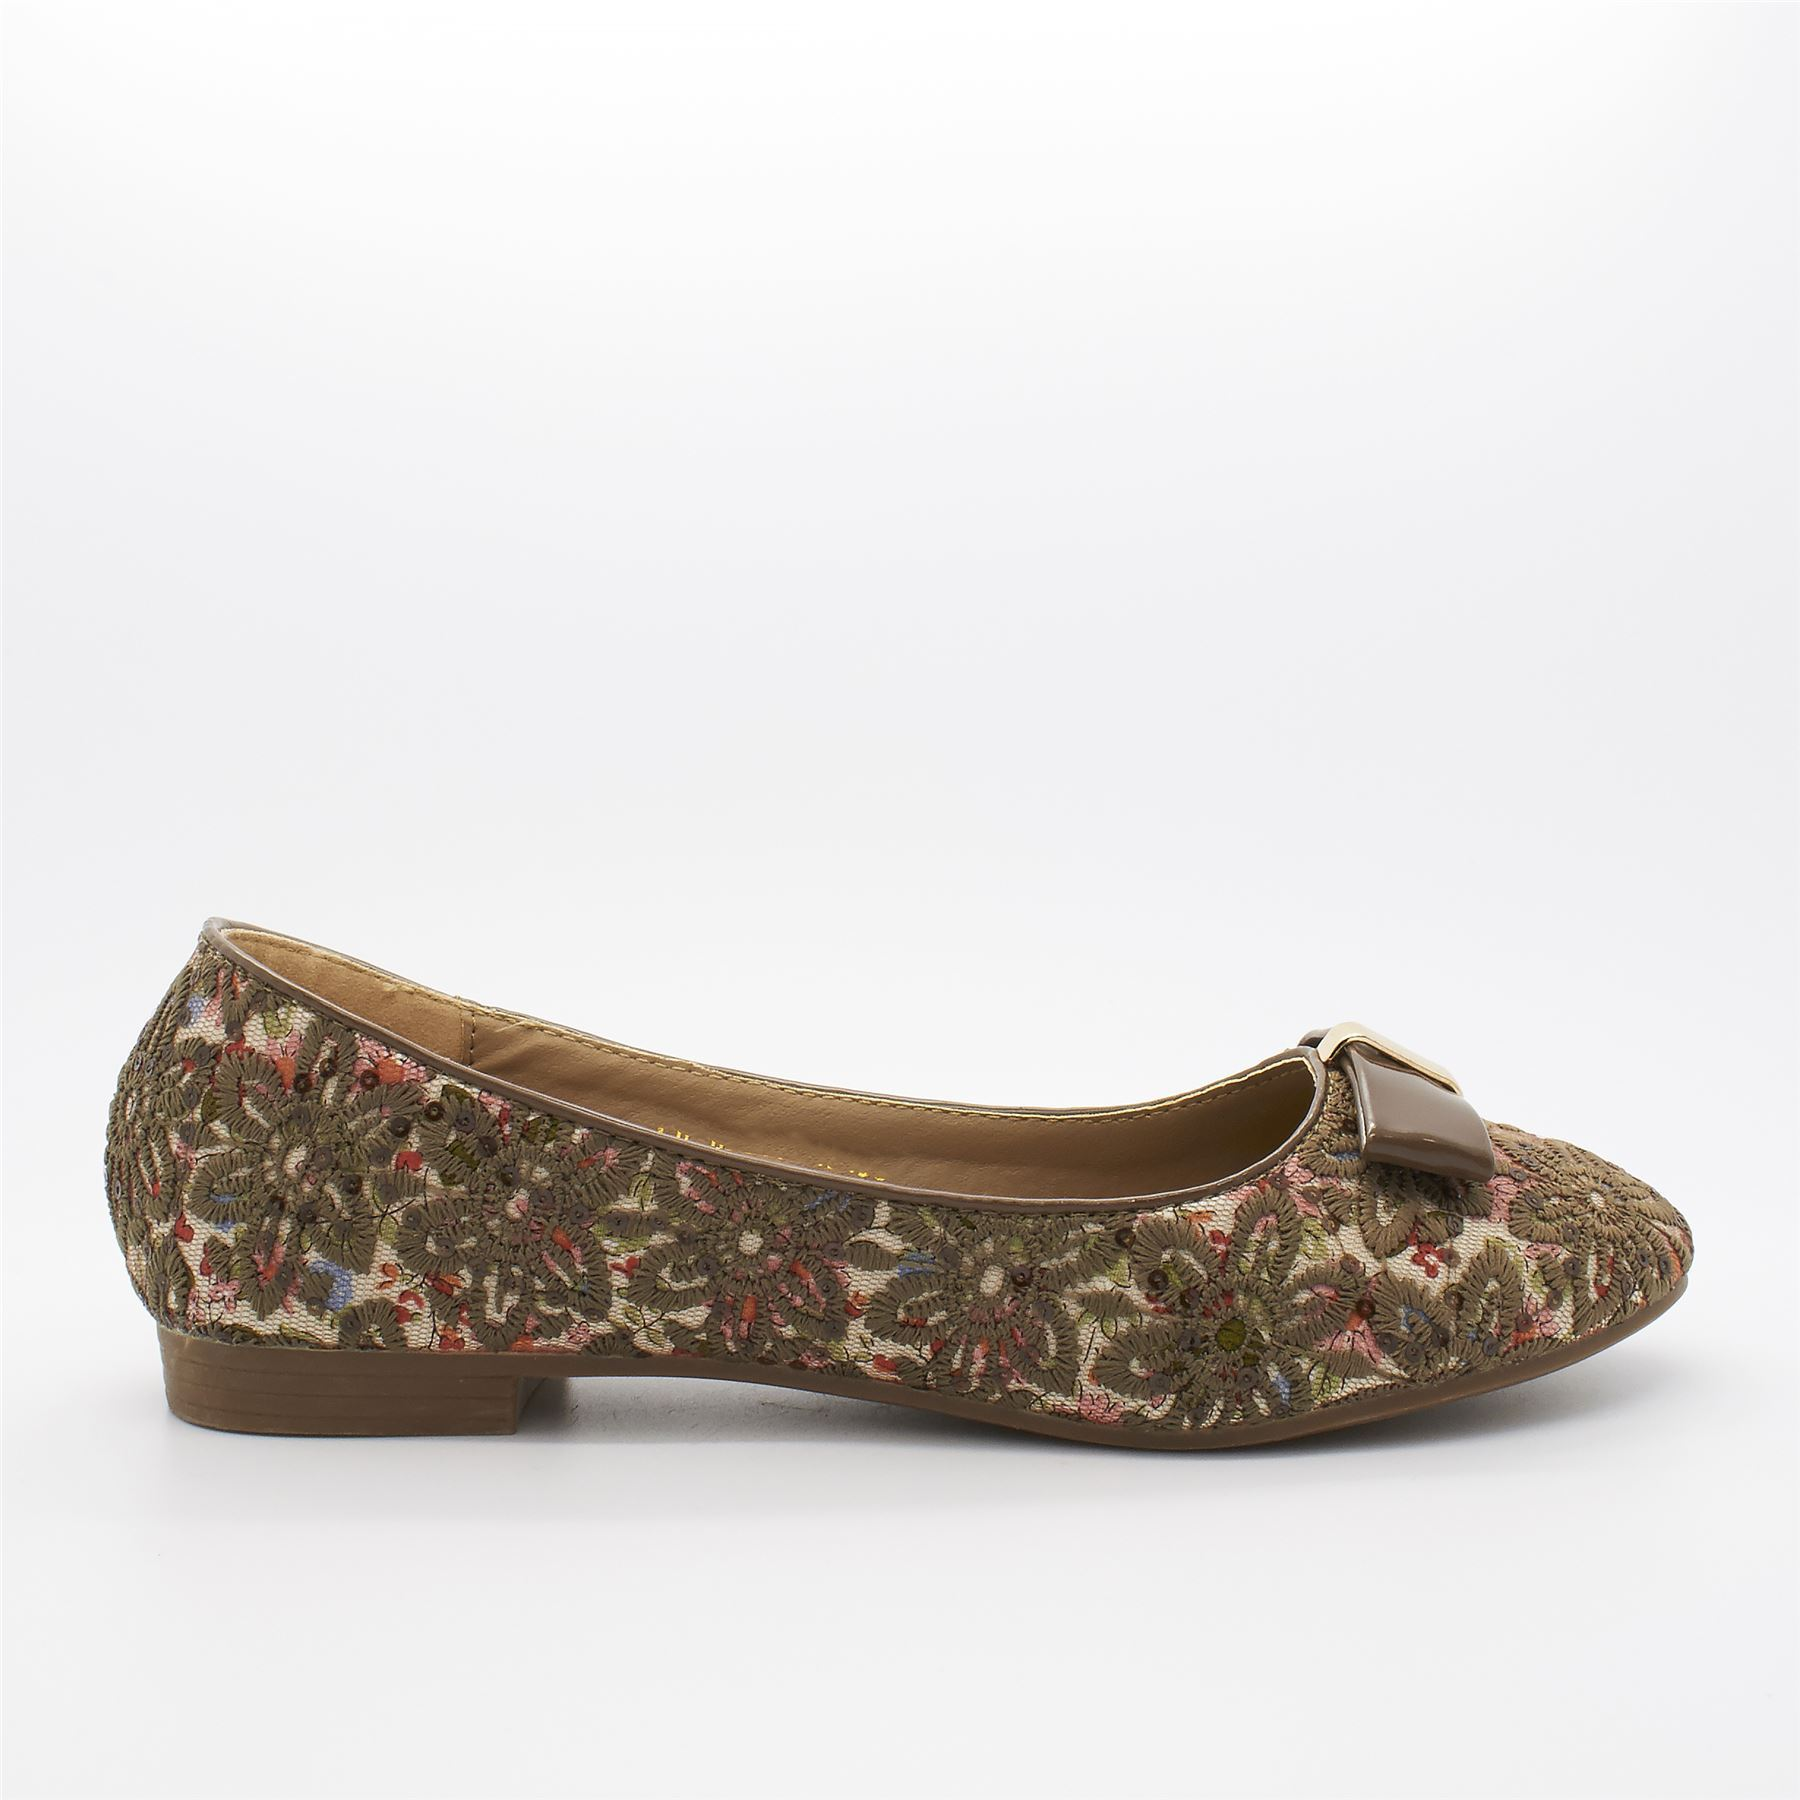 New Womens Ladies Ballerina Dolly Flower Flat Patent Bow Ballet Pumps Shoes Size